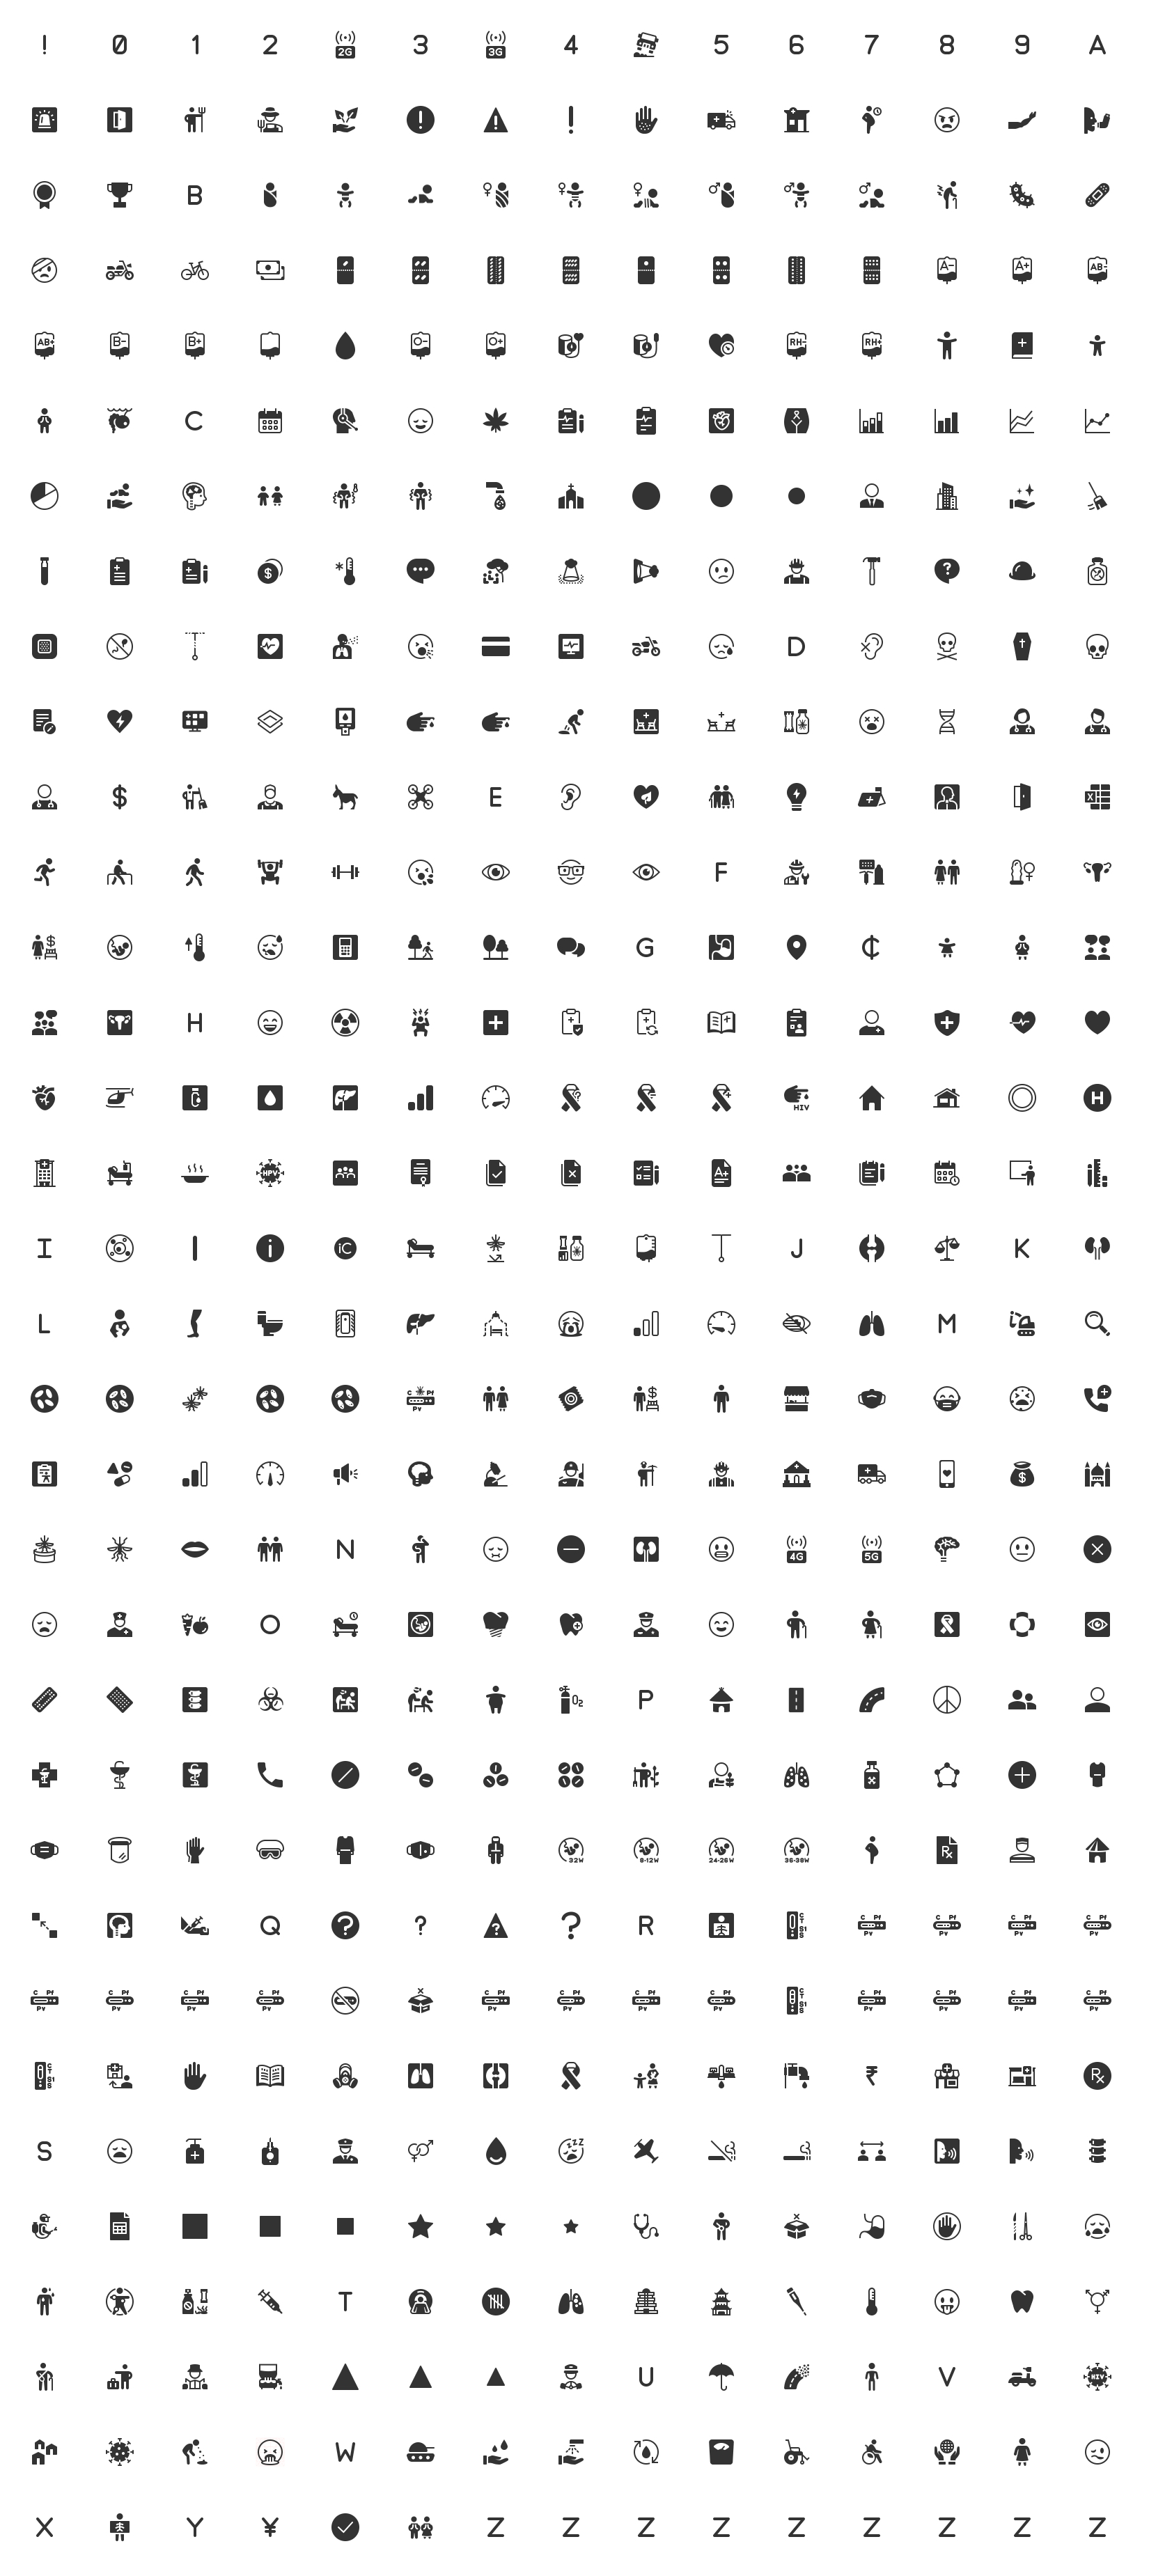 Free Health Icons - 1000+ free, open source health icons. Free for use in your next commercial or personal project.